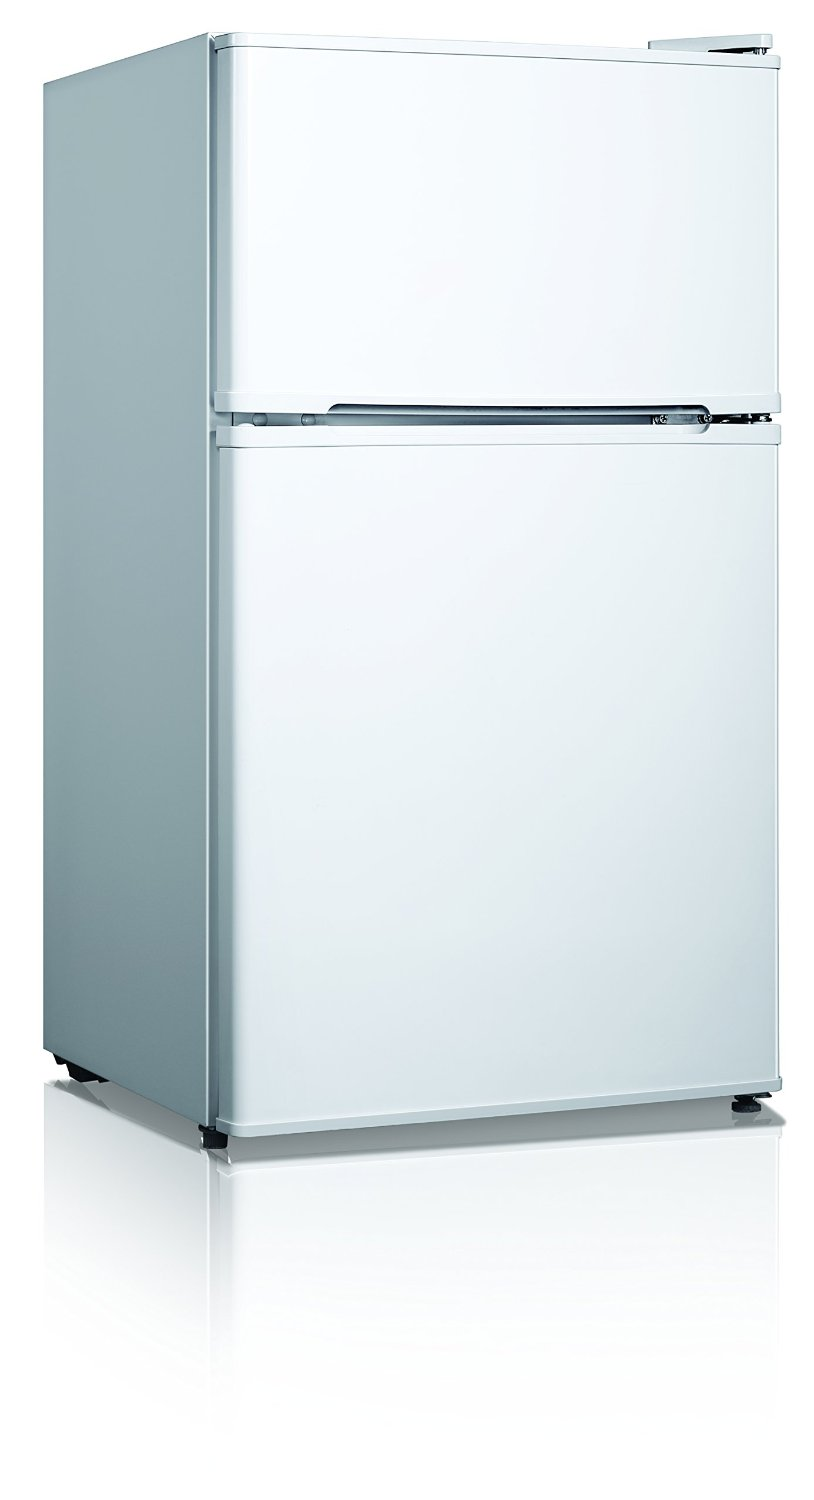 Midea WHD-127FW1 Compact Reversible Double Door Refrigerator and Freezer, 3.5 Cubic Feet, White